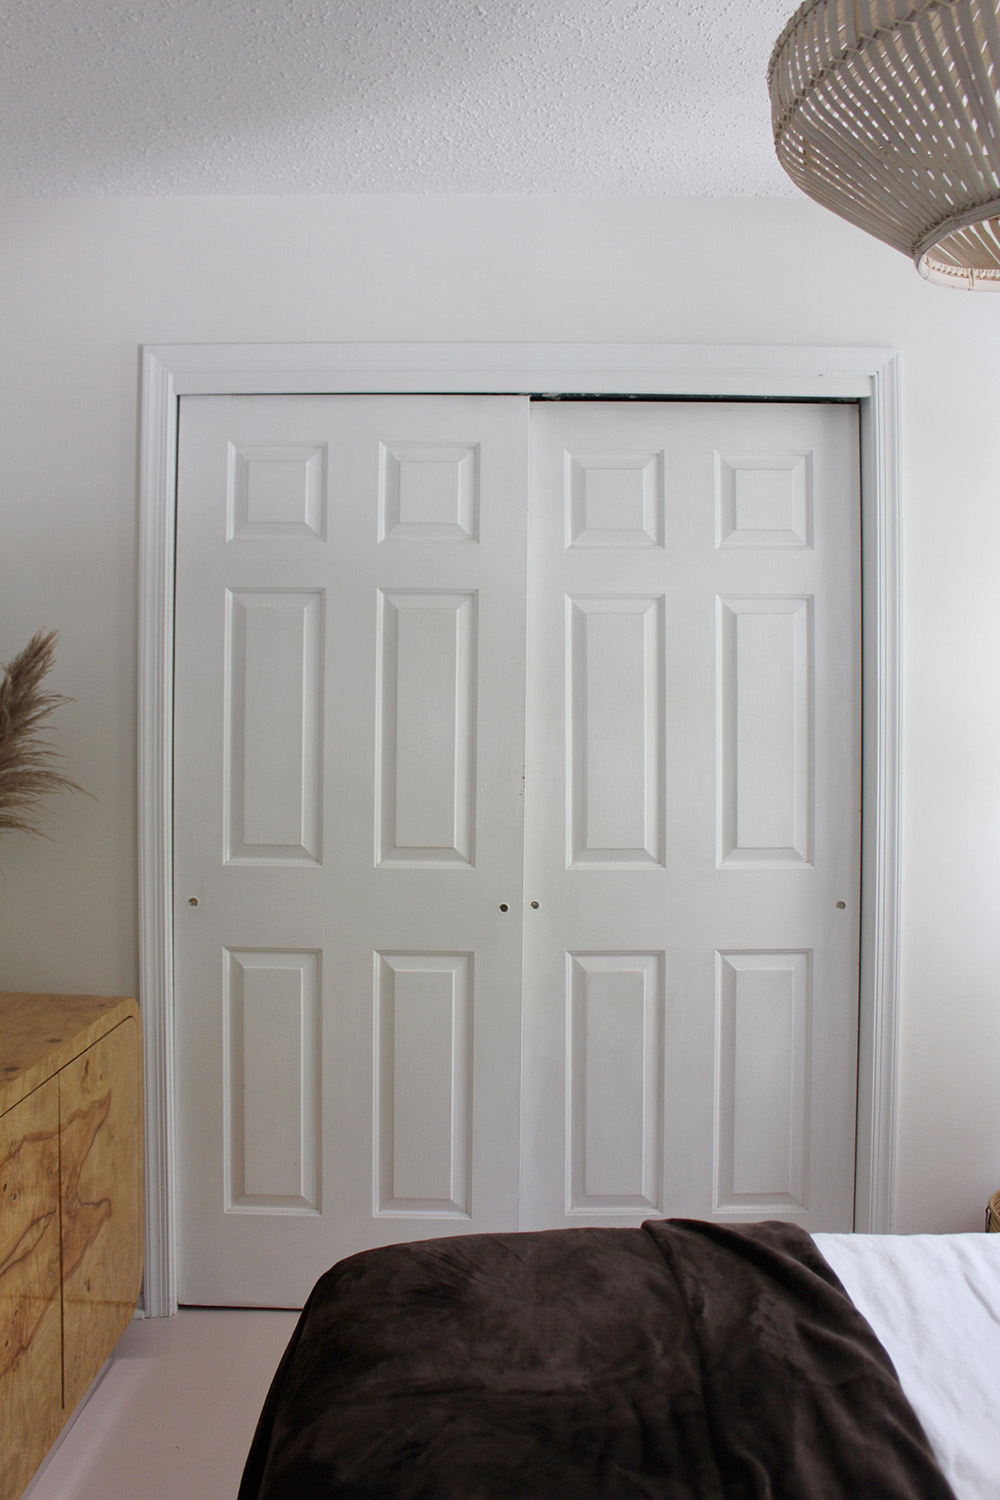 A closet with two six panel sliding doors.